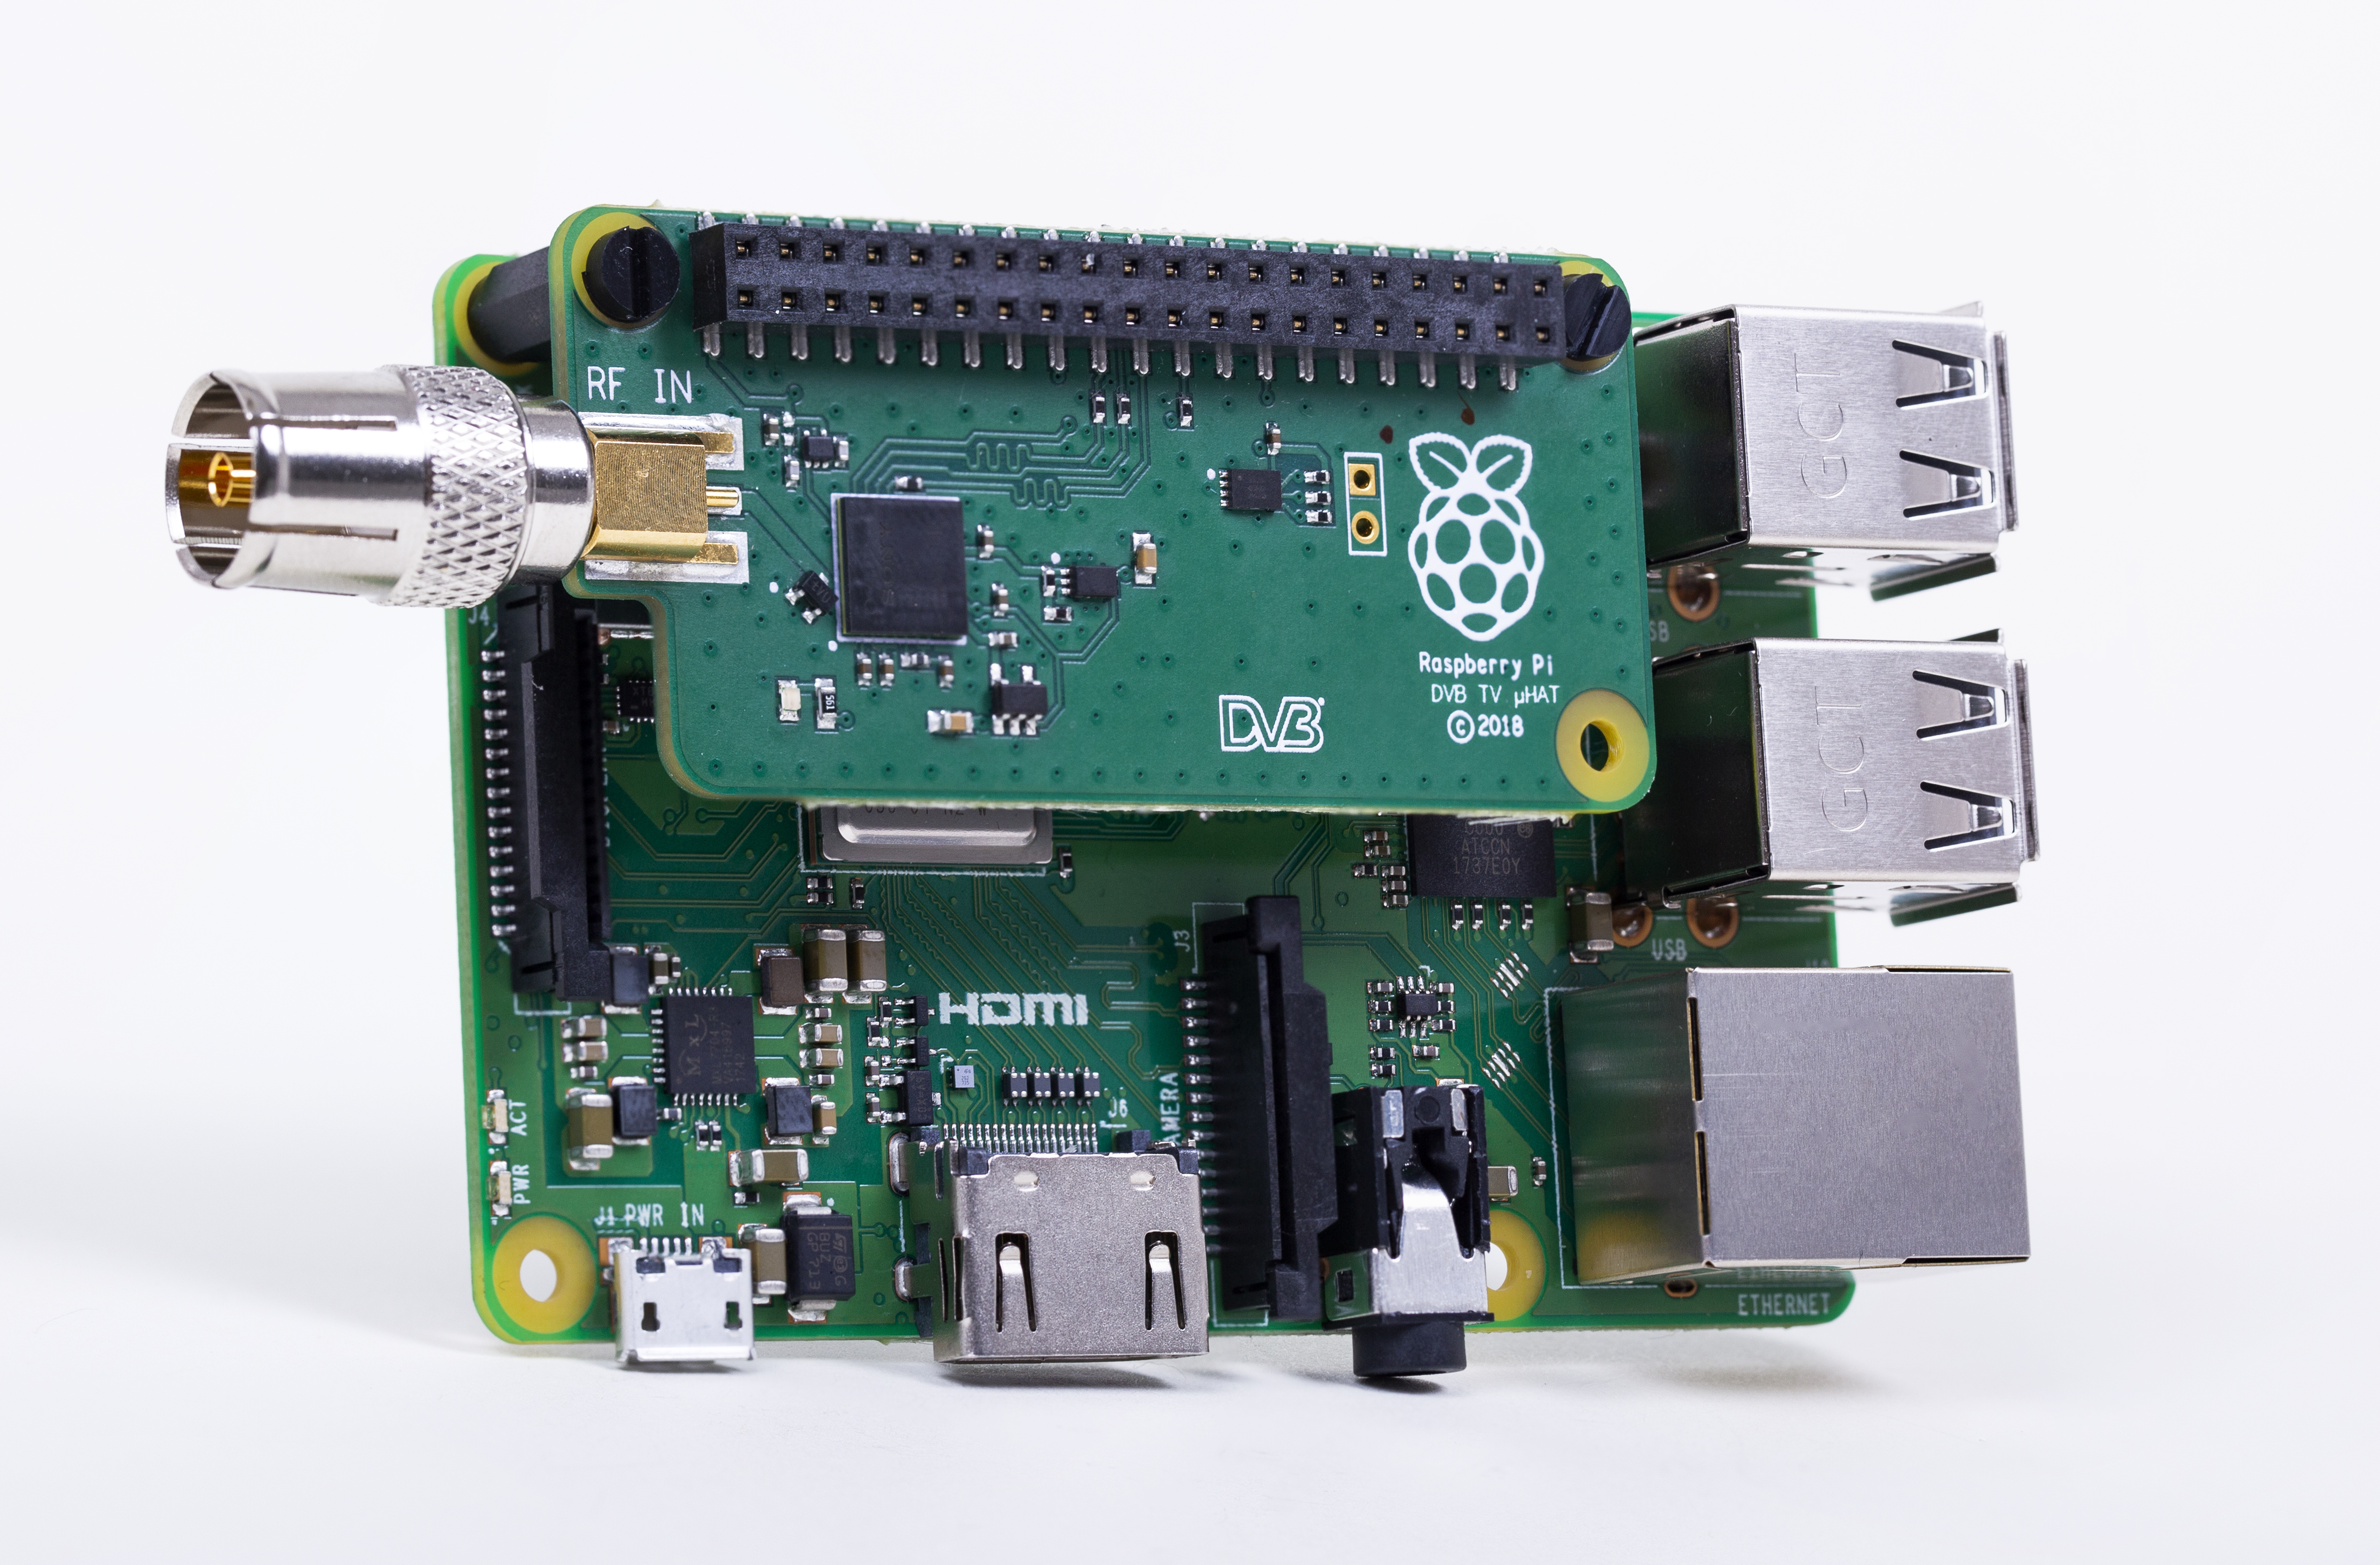 A photograph of a Raspberry Pi 3 Model B+ with TV HAT connected Oct 2018